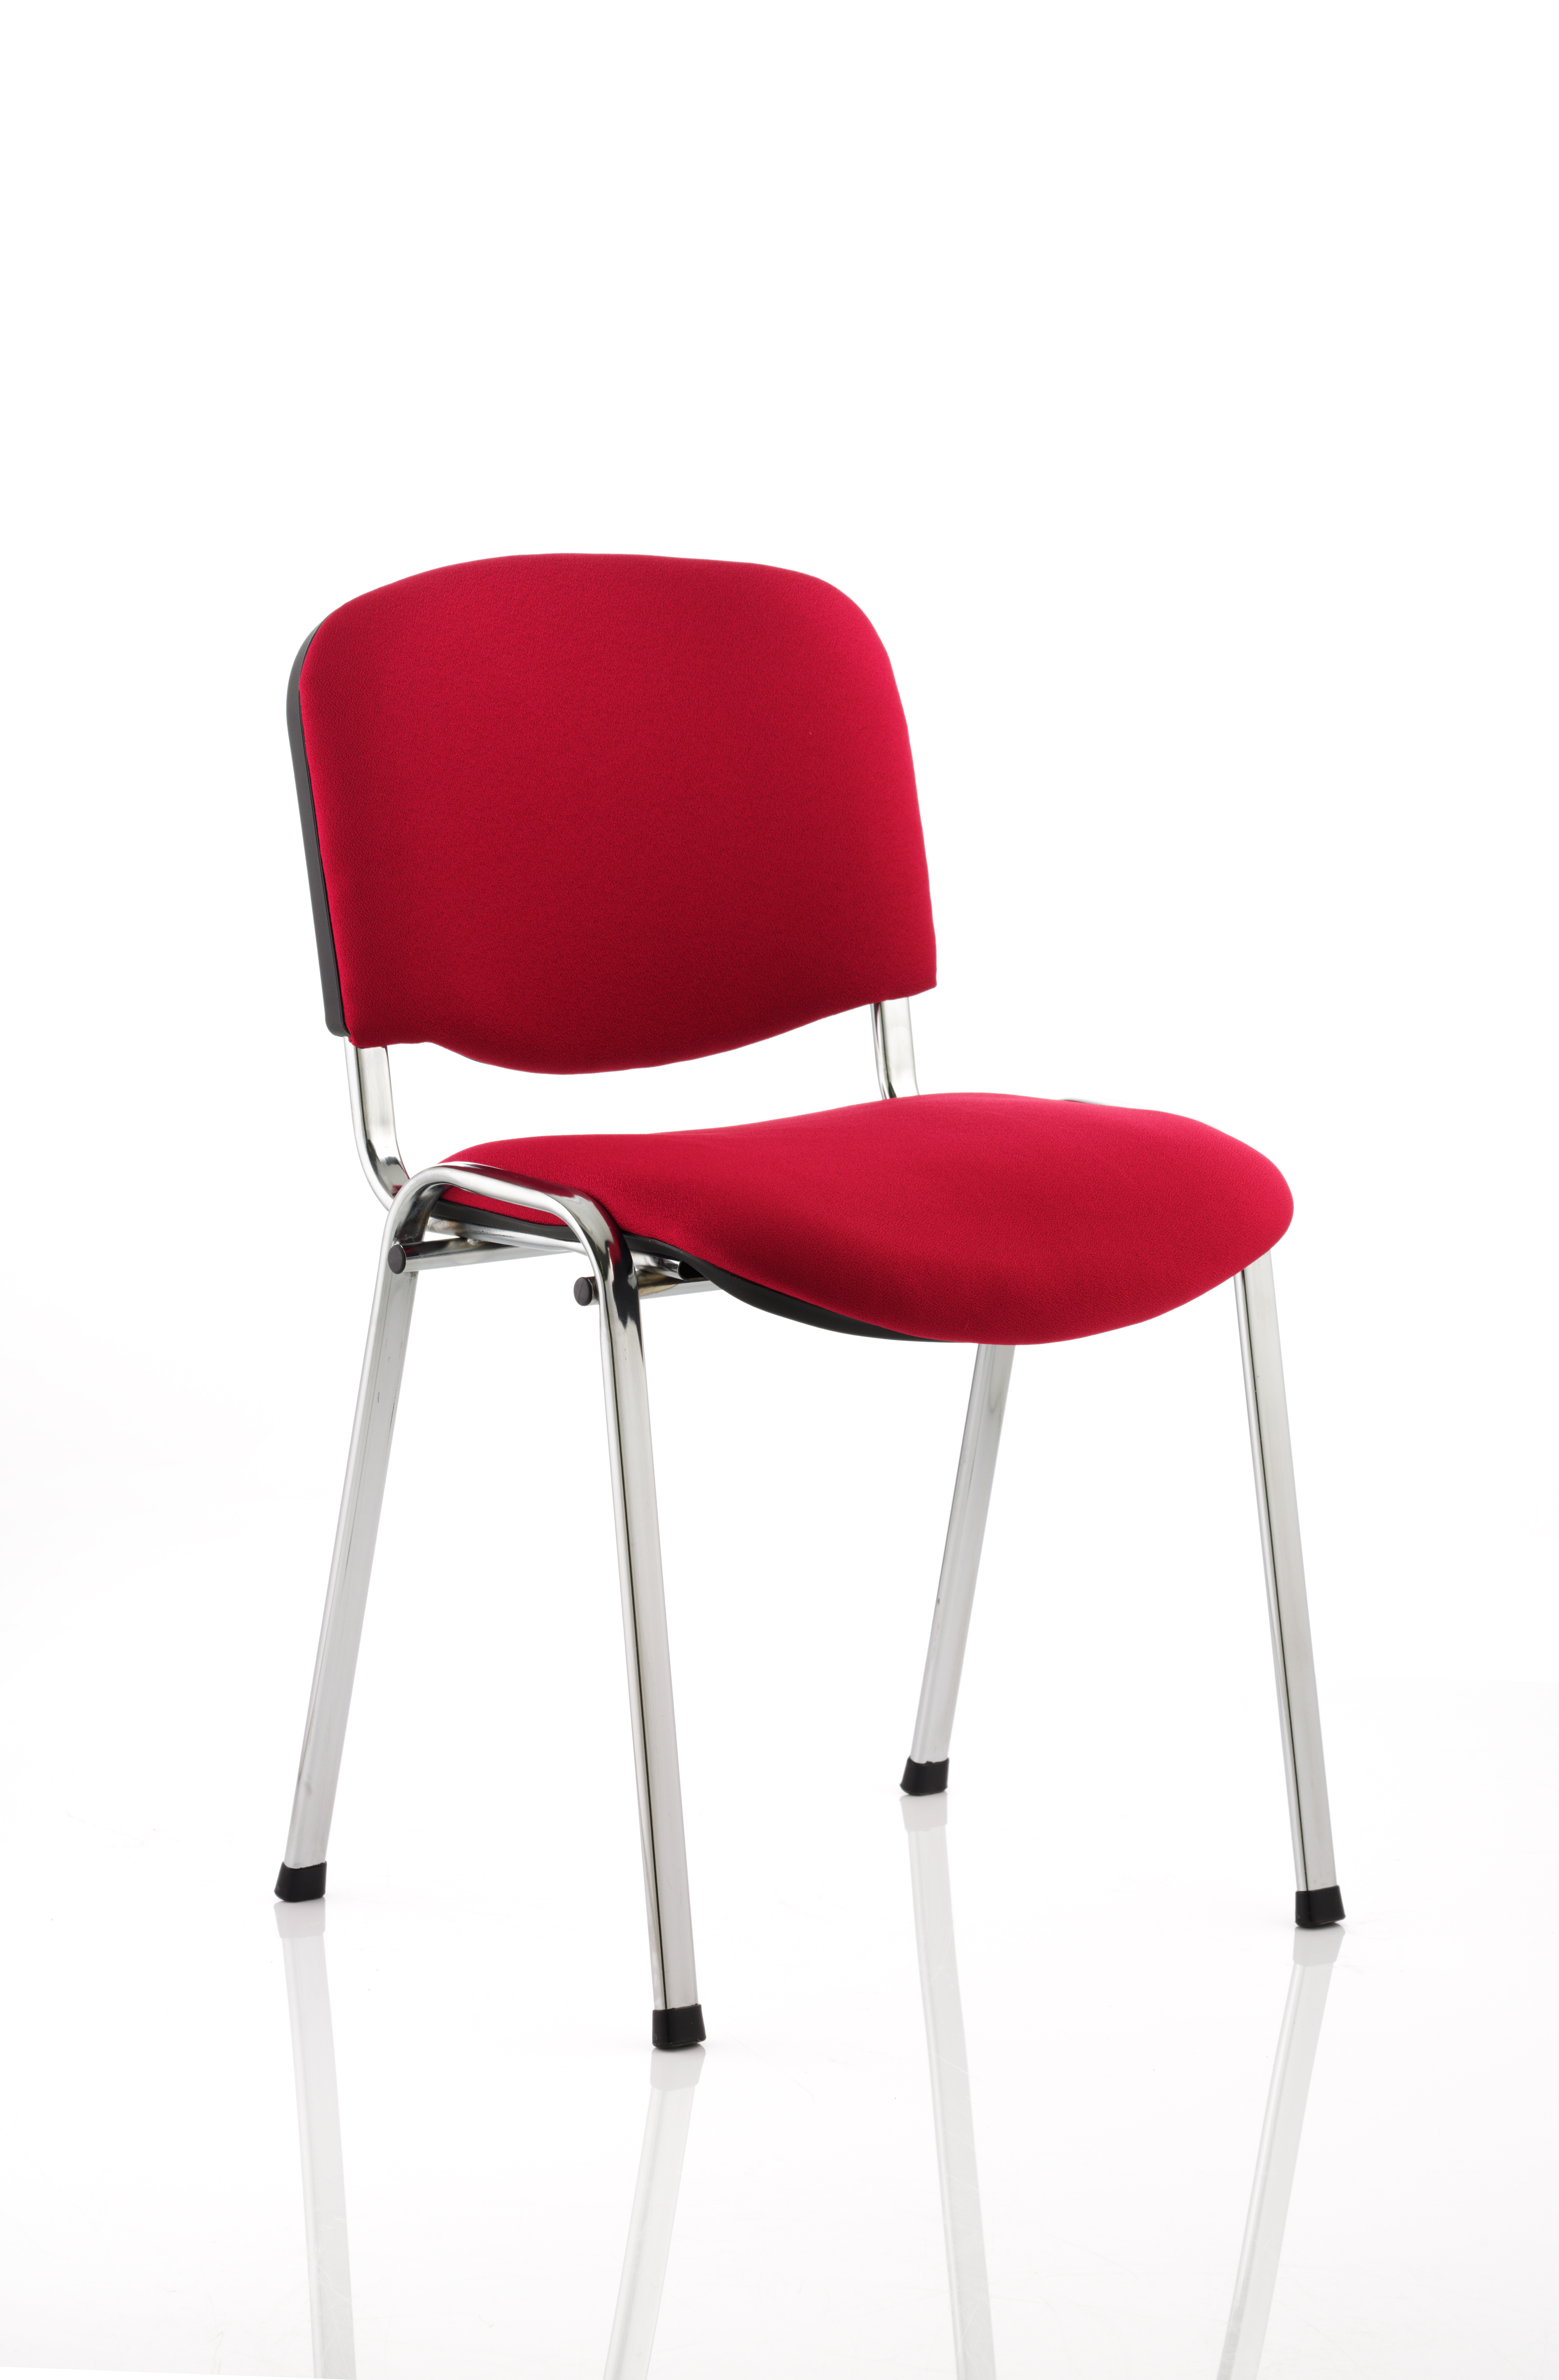 Stacking Chairs ISO Stacking Chair Wine Fabric Chrome Frame BR000299